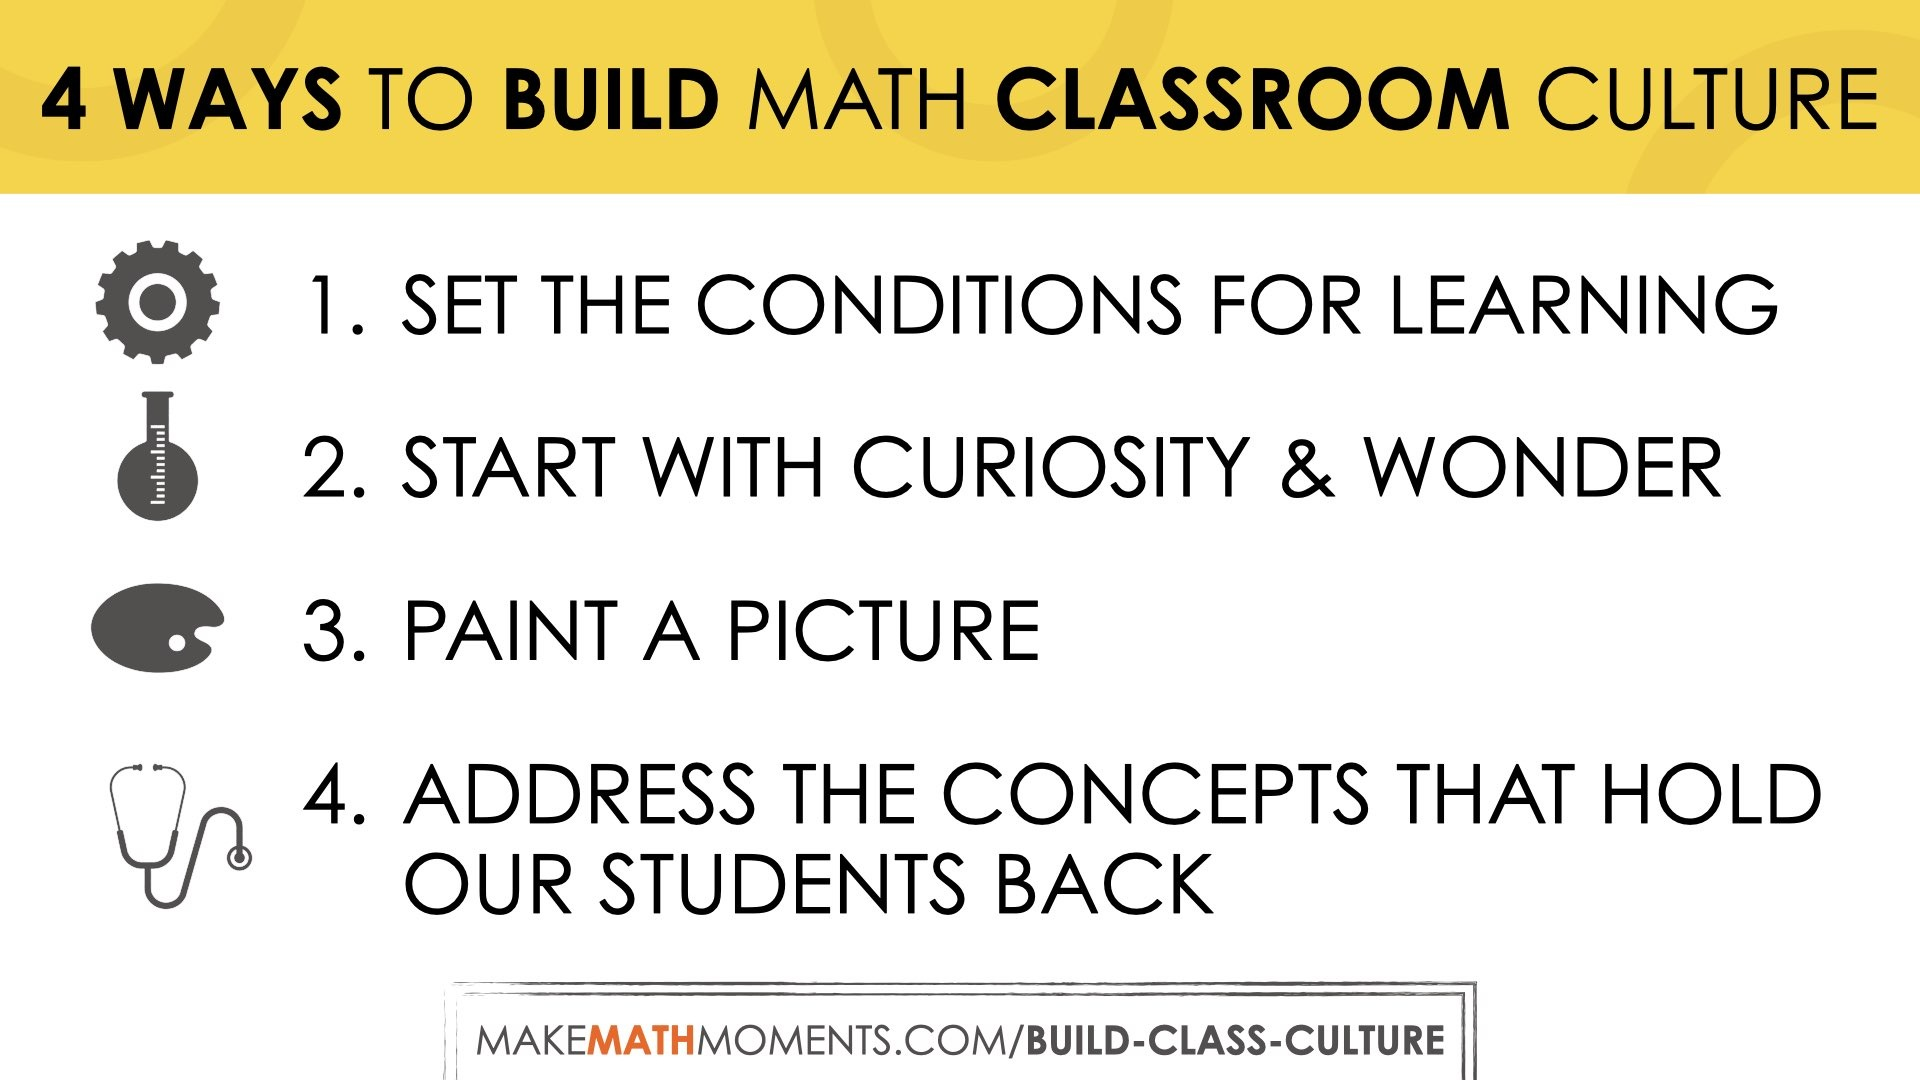 4 Tips to Build Your Math Classroom Culture - Make Math Moments